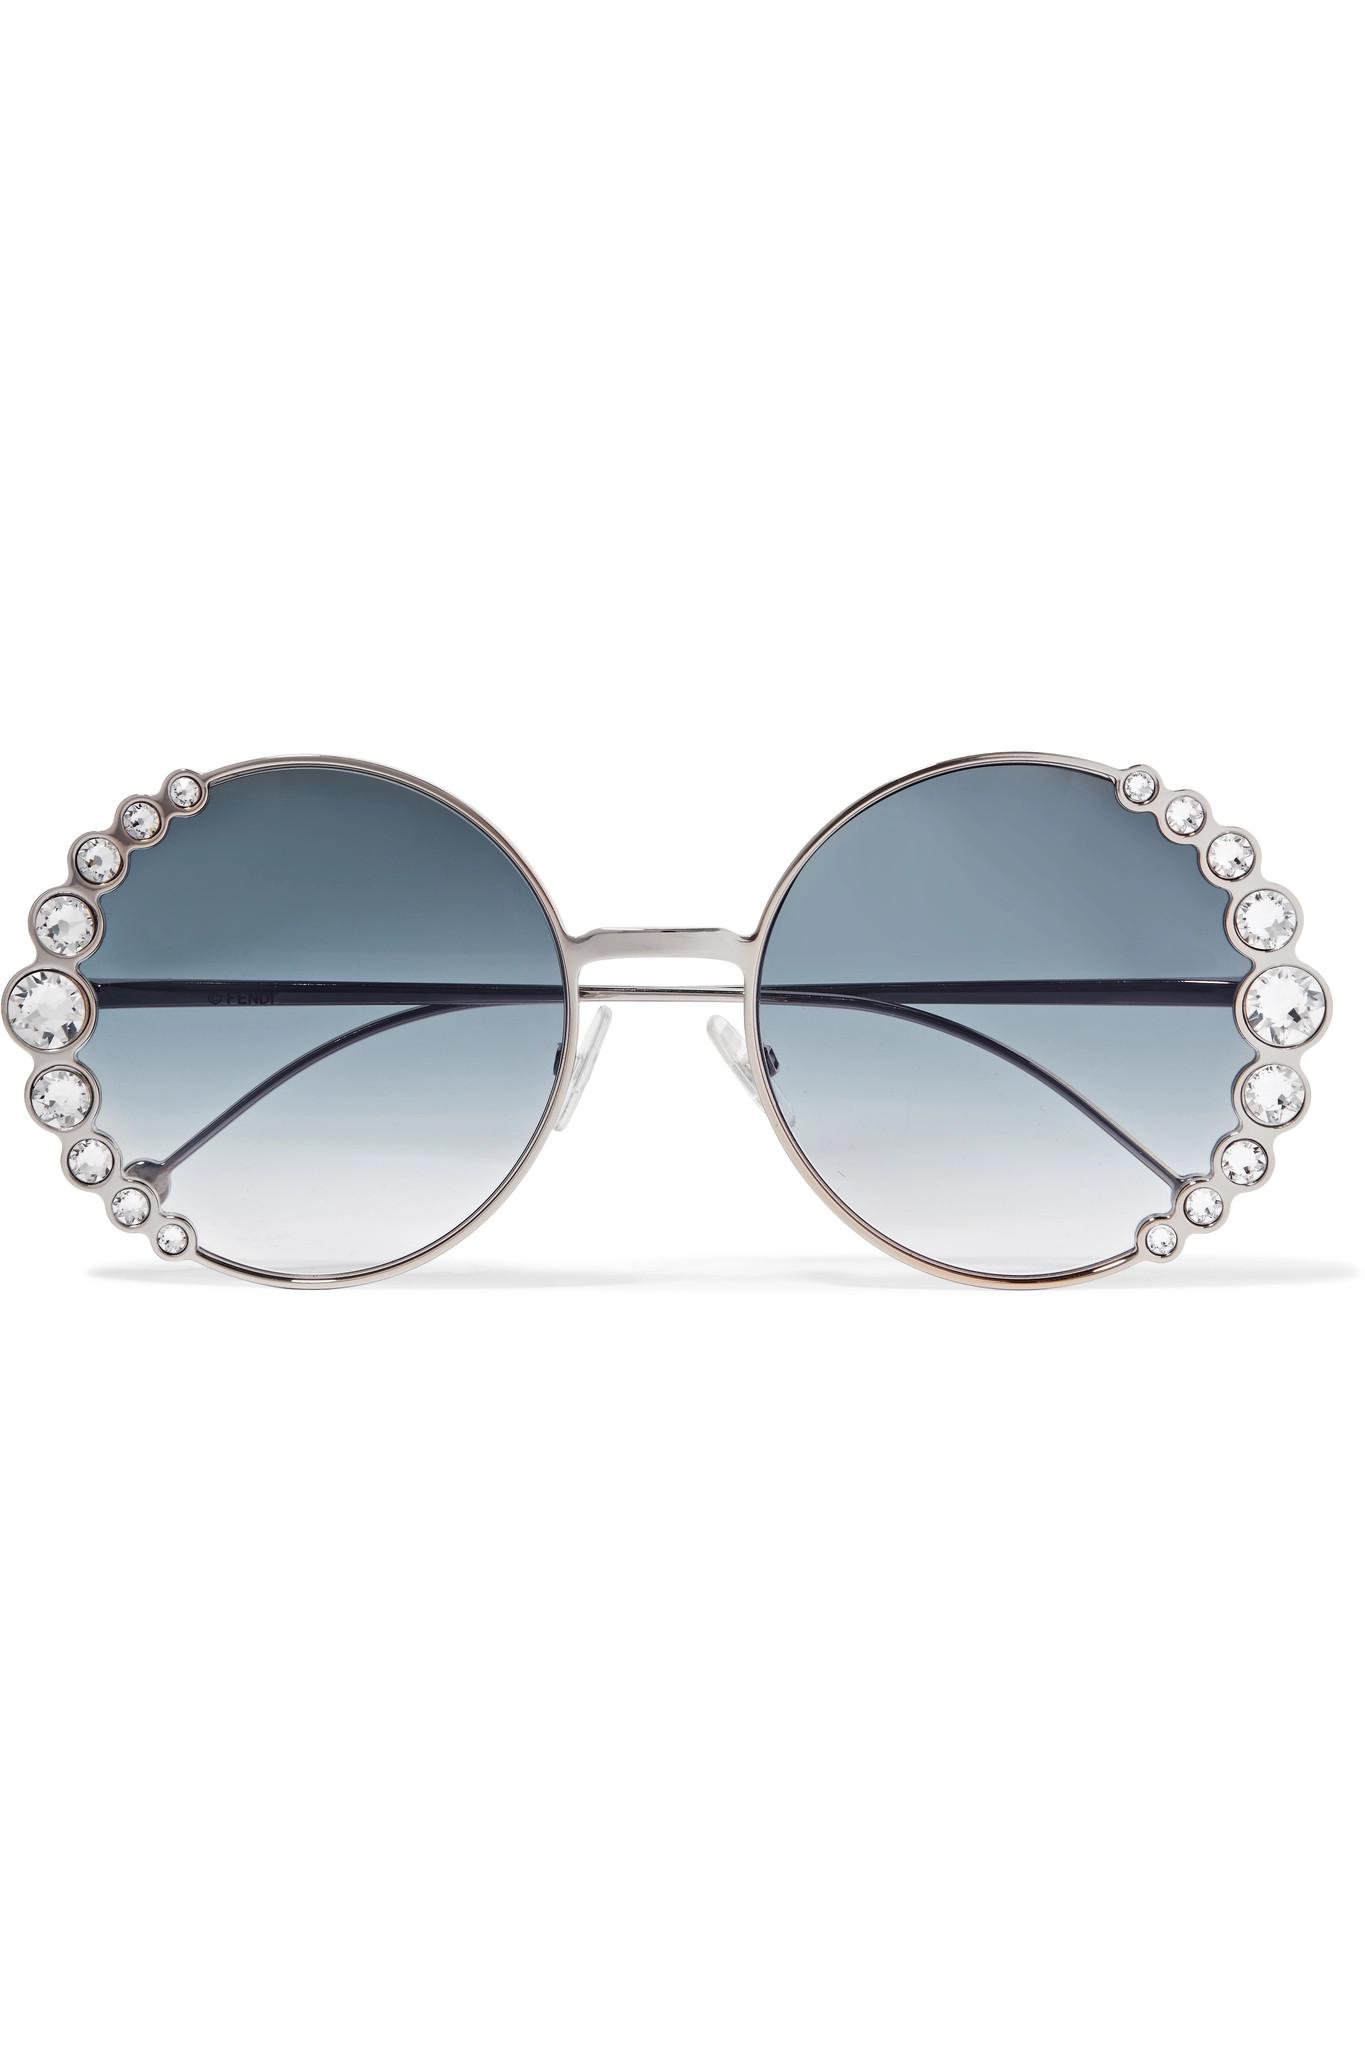 43333a0898 Lyst - Fendi Round-frame Crystal-embellished Gold-tone Sunglasses in ...